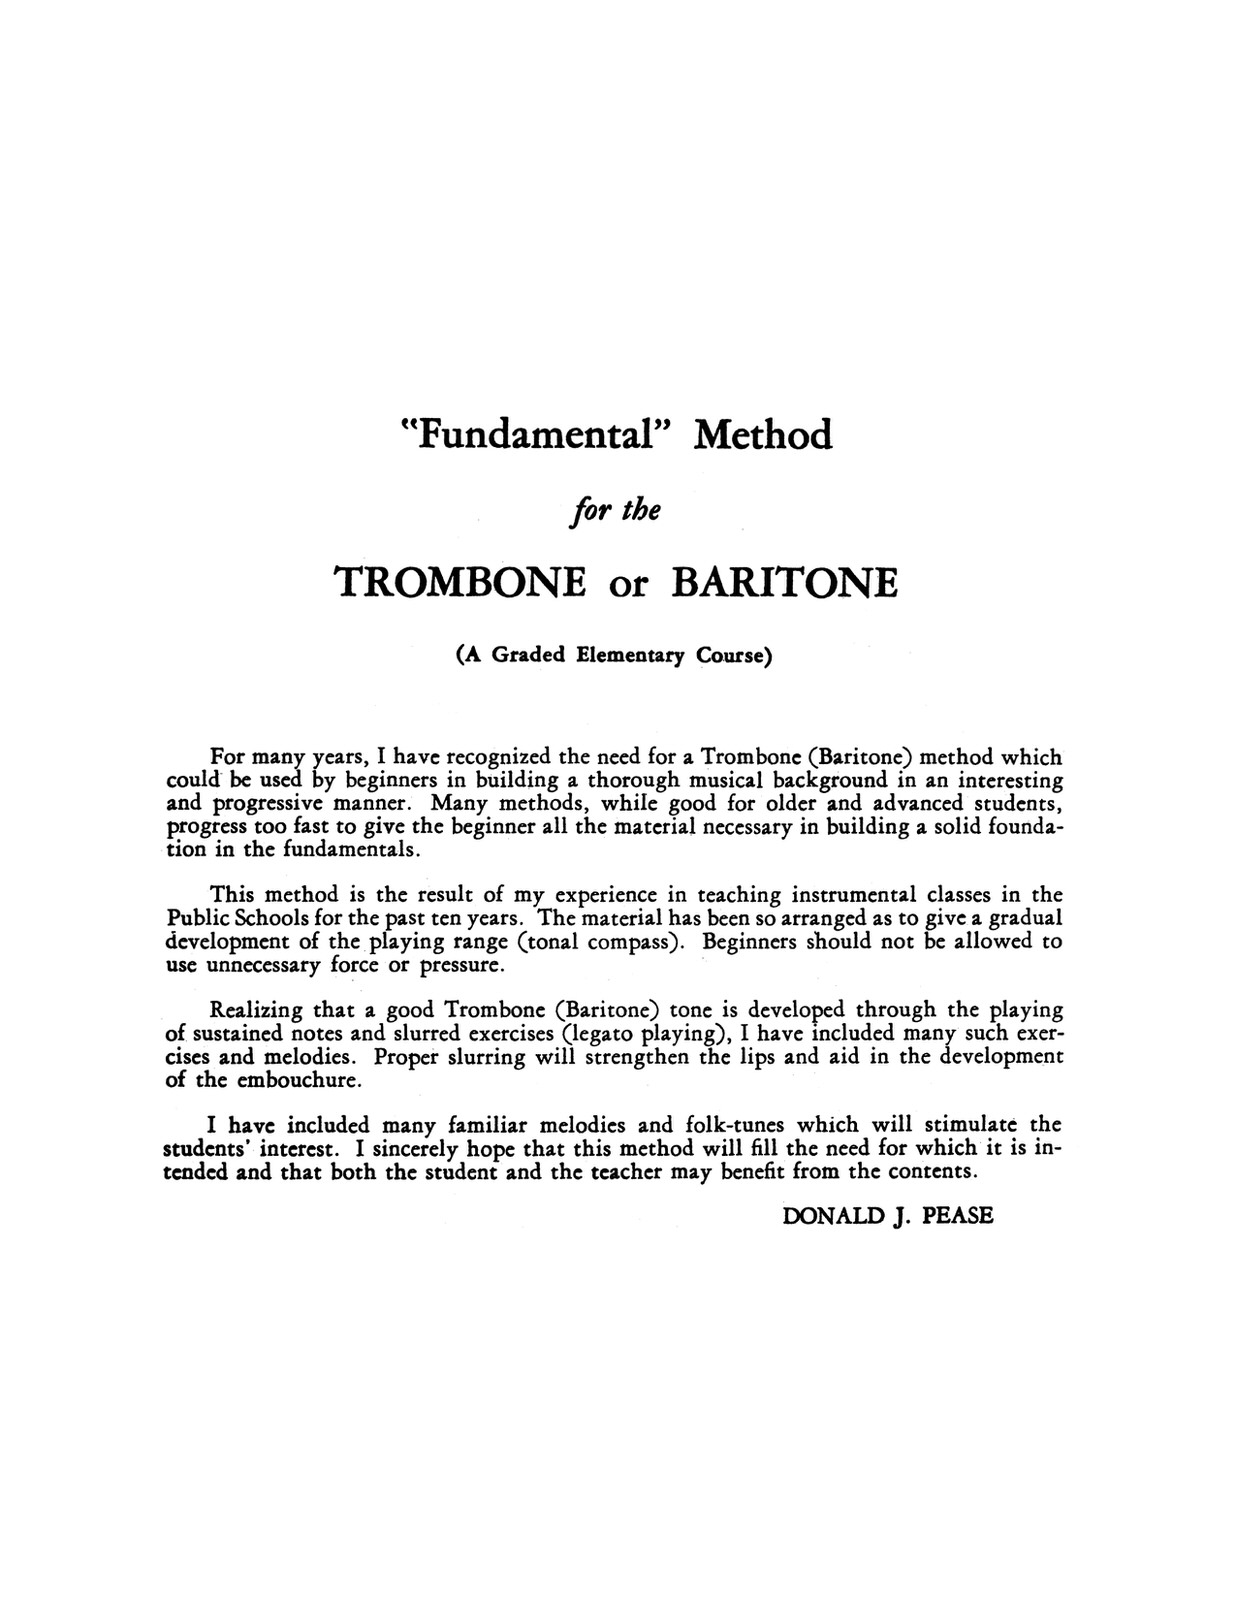 Pease, Fundamental Method for the Trombone and Baritone 2